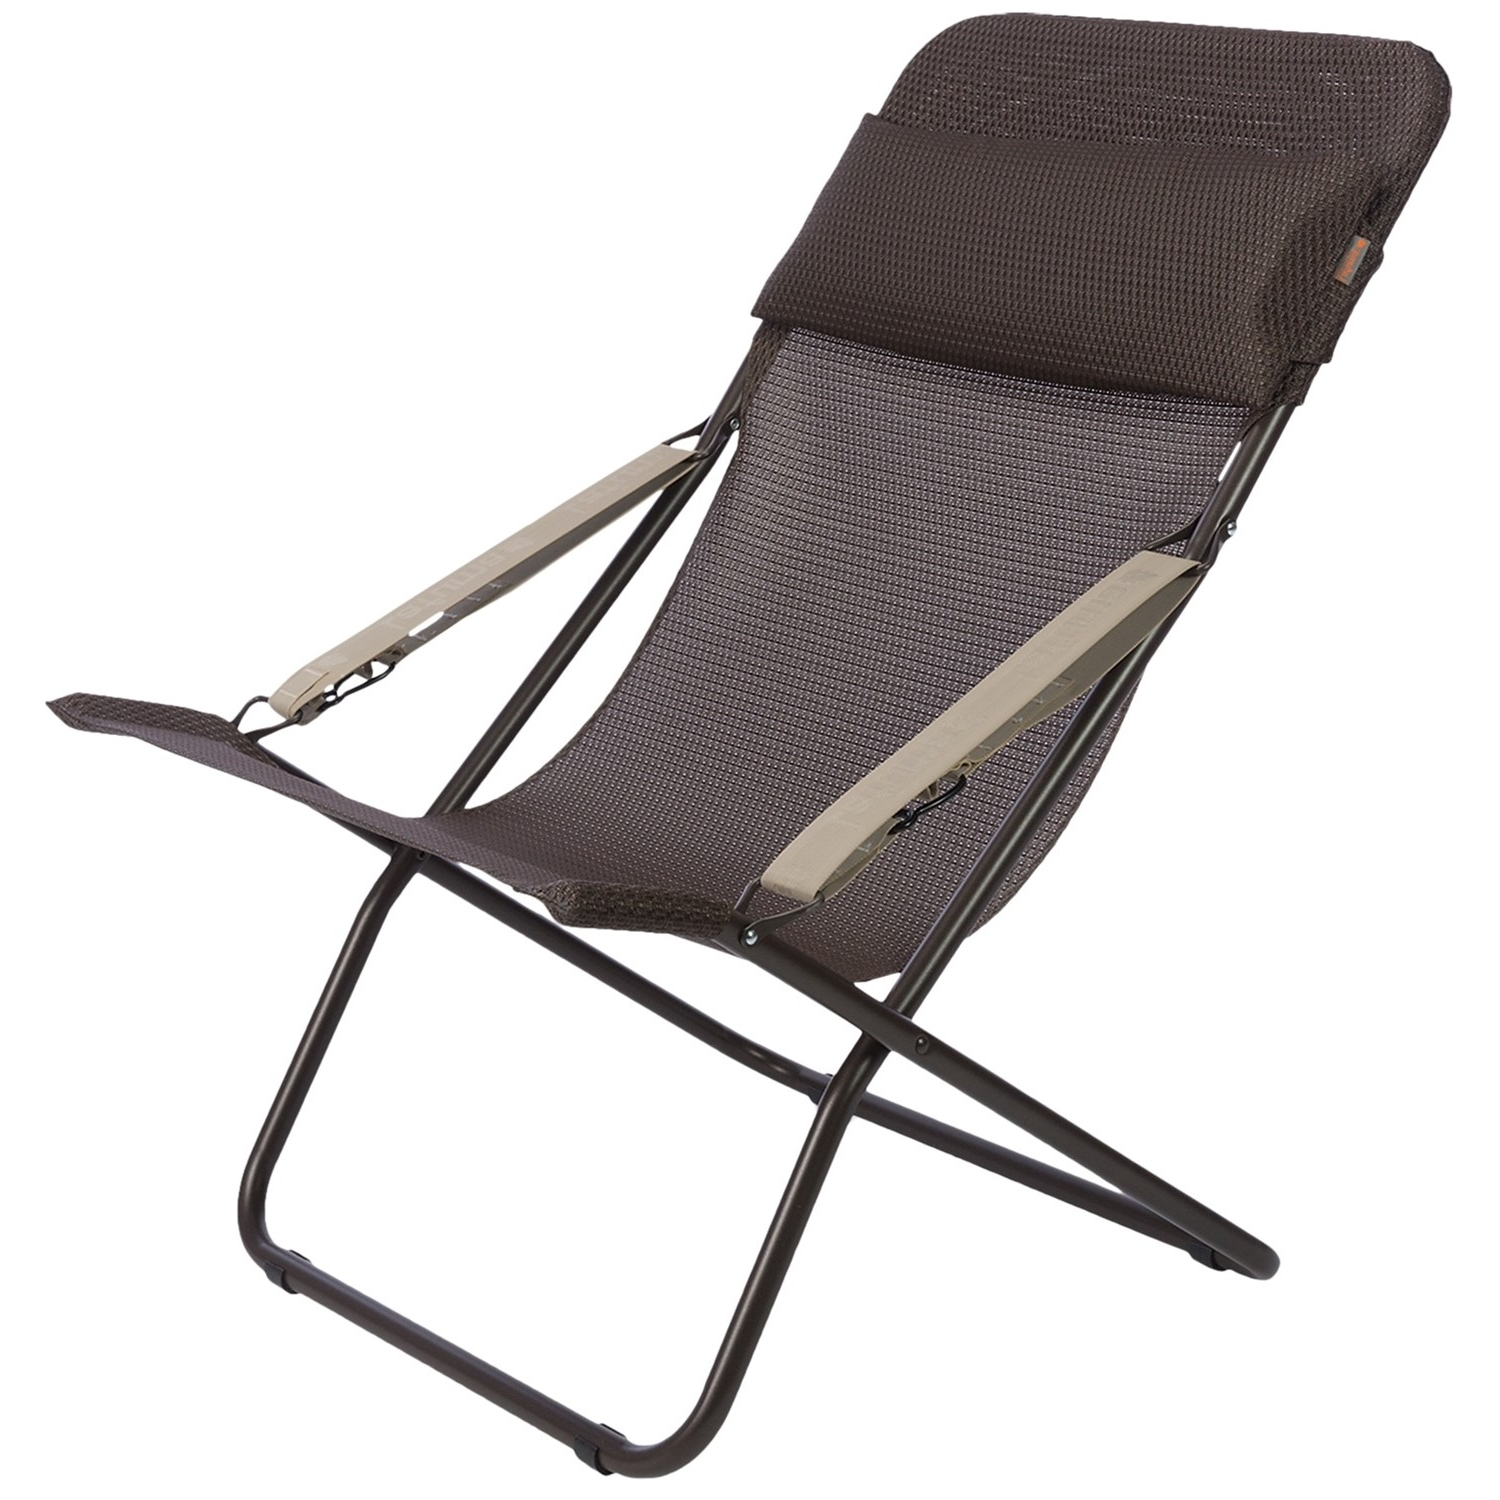 Lounge Chair Lawn Chairs For And Tall 300 Lb Pertaining To Famous